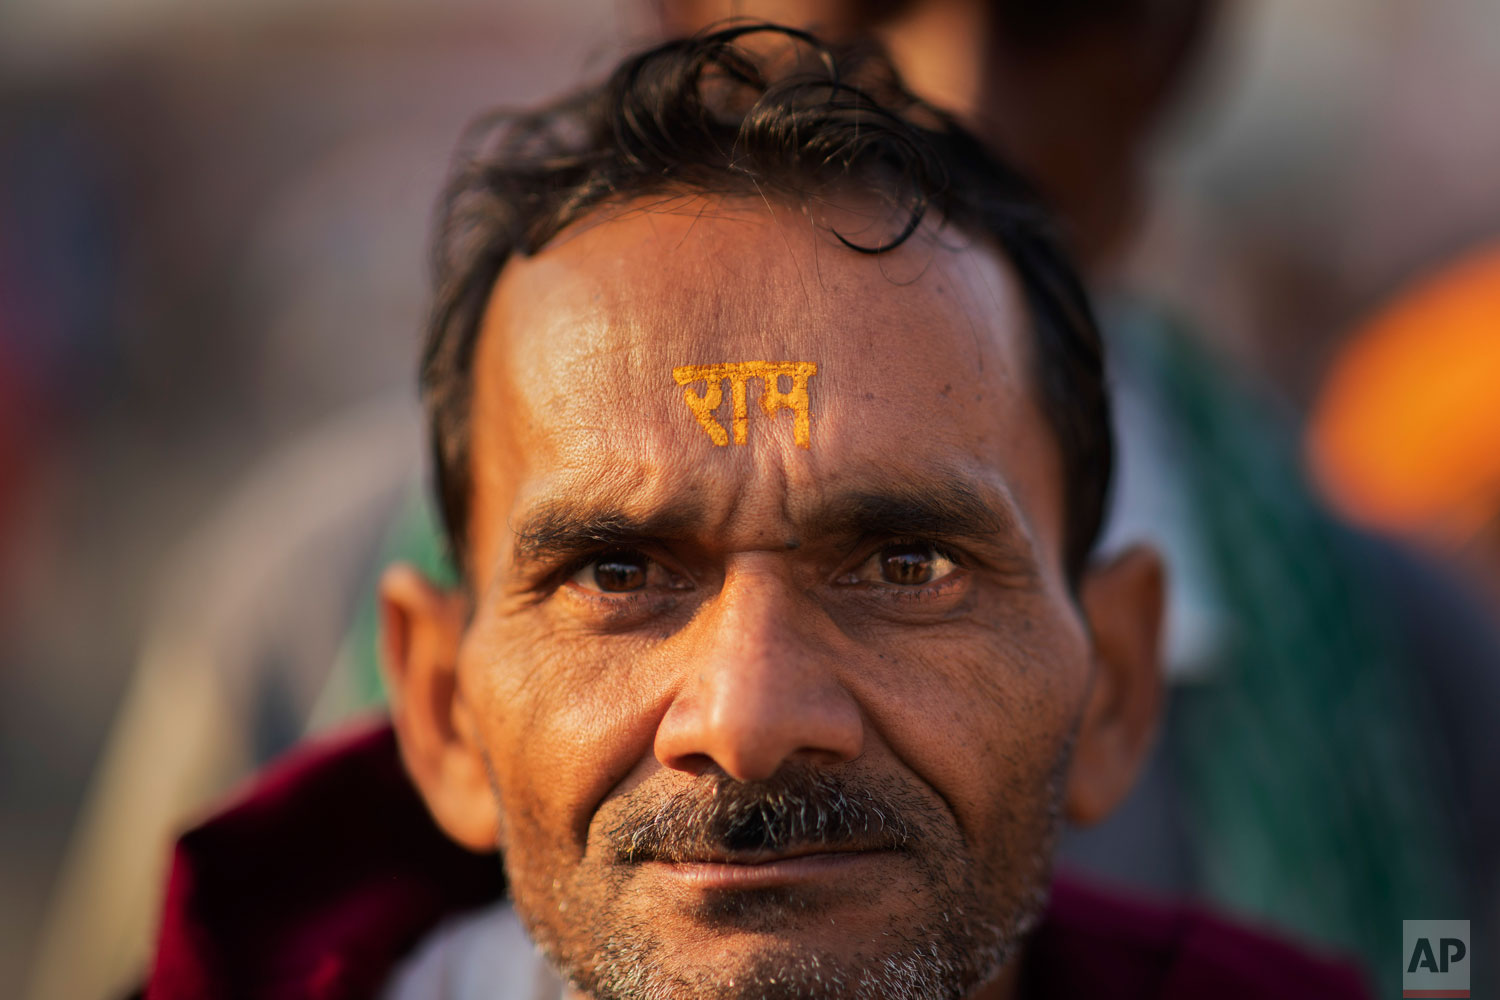 In this Sunday, Nov. 25, 2018 photo, a Hindu hardline supporter wears the the name of the god Ram written on his forehead in Ayodhya, Uttar Pradesh, India. Tens of thousands rallied to demand a Hindu temple be built on a site in northern India where hardliners in 1992 had attacked and demolished a 16th century mosque, sparking deadly Hindu-Muslim violence. Hindu groups say the mosque was built after a temple dedicated to Ram was destroyed by Muslim invaders. (AP Photo/Bernat Armangue)